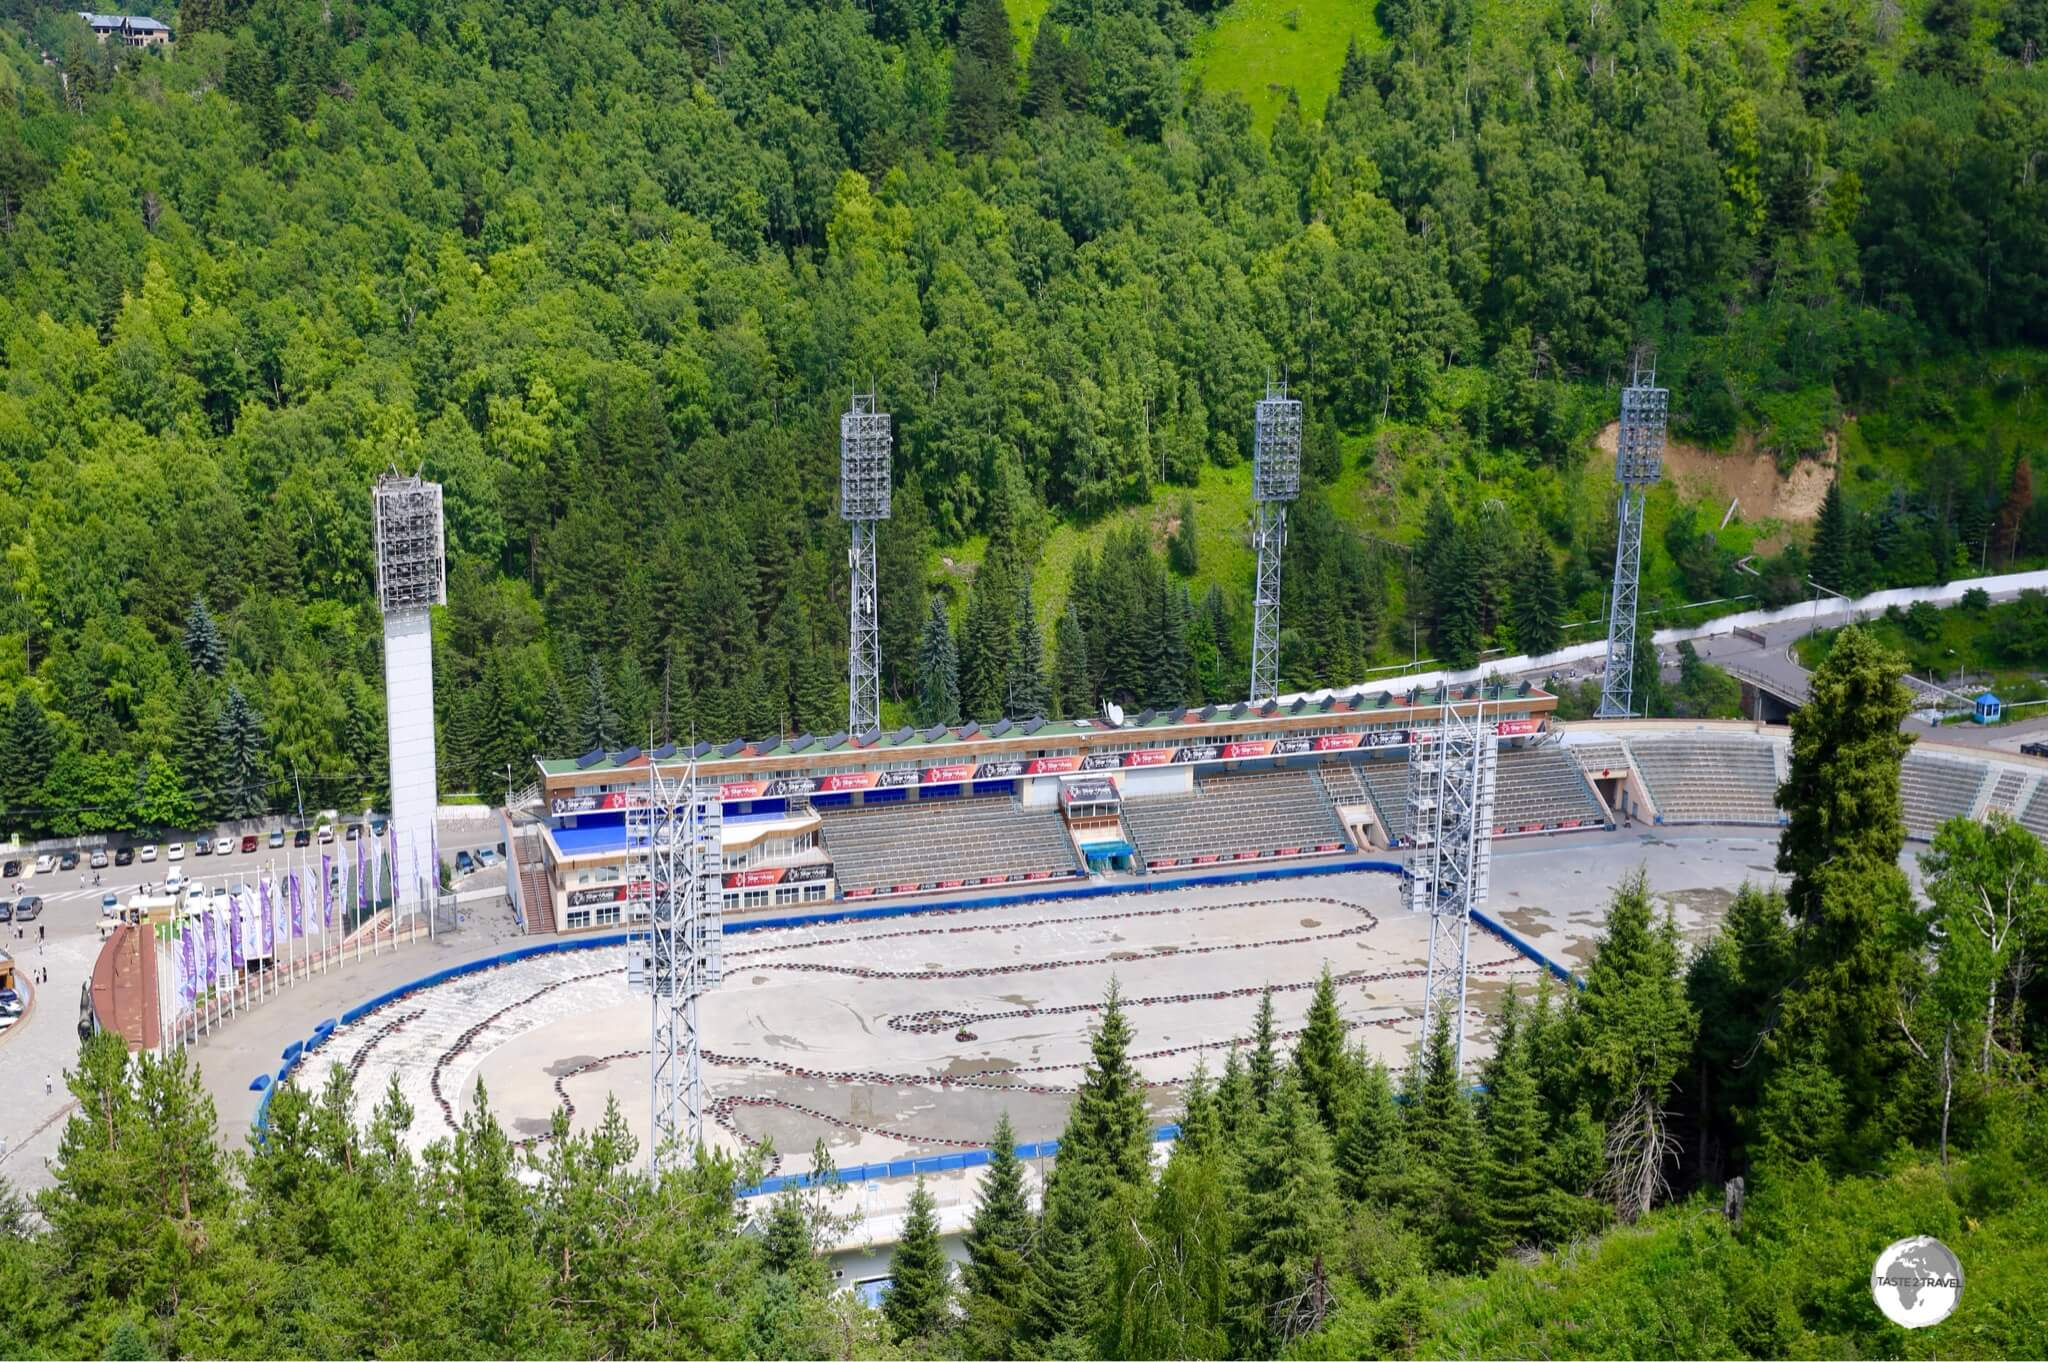 During the summer months, the Medeu arena is used for Go-karting.